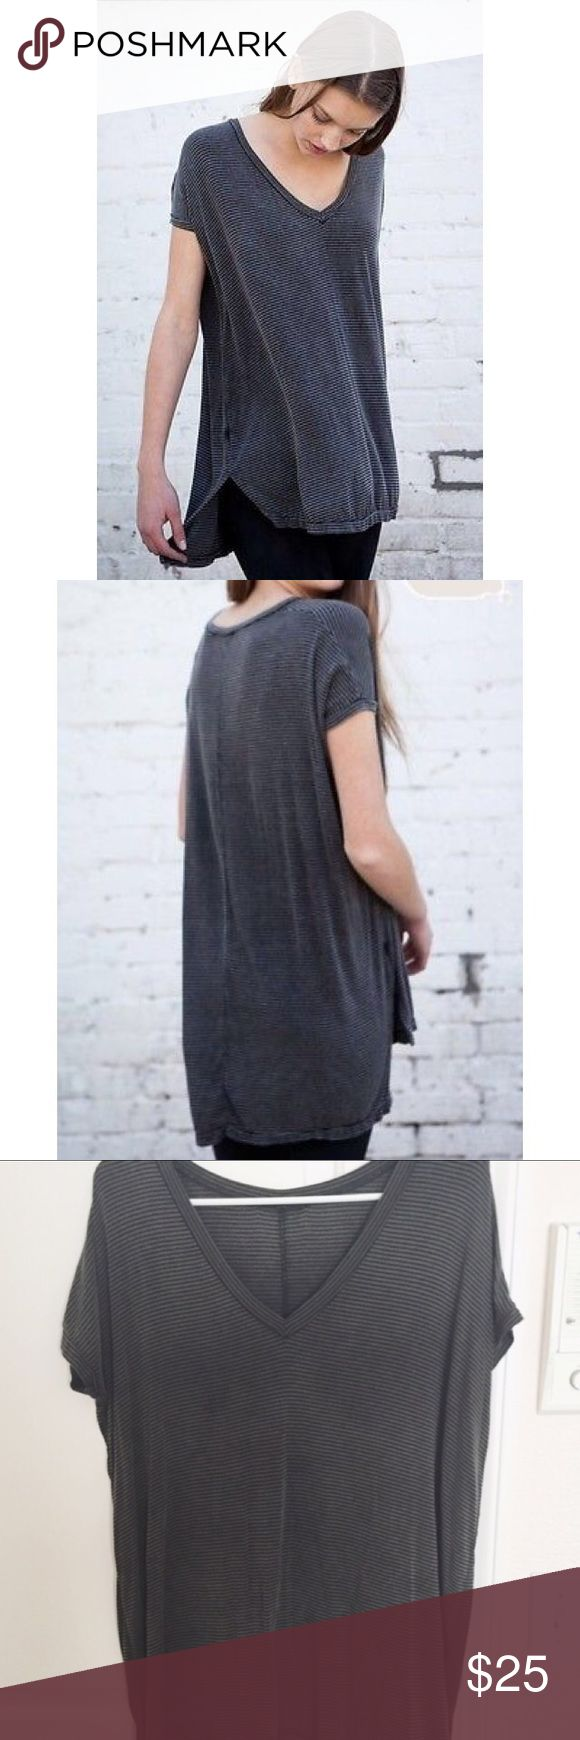 Brandy Melville Milan Top Brandy Melville Milan Top OS  Brandy Melville  Design name: Milan Top Fit: Long Oversized tshirt / long like a tshirt dress Vneck neckline Size: one size Color: Black and charcoal striped Brandy Melville Tops Tees - Short Sleeve